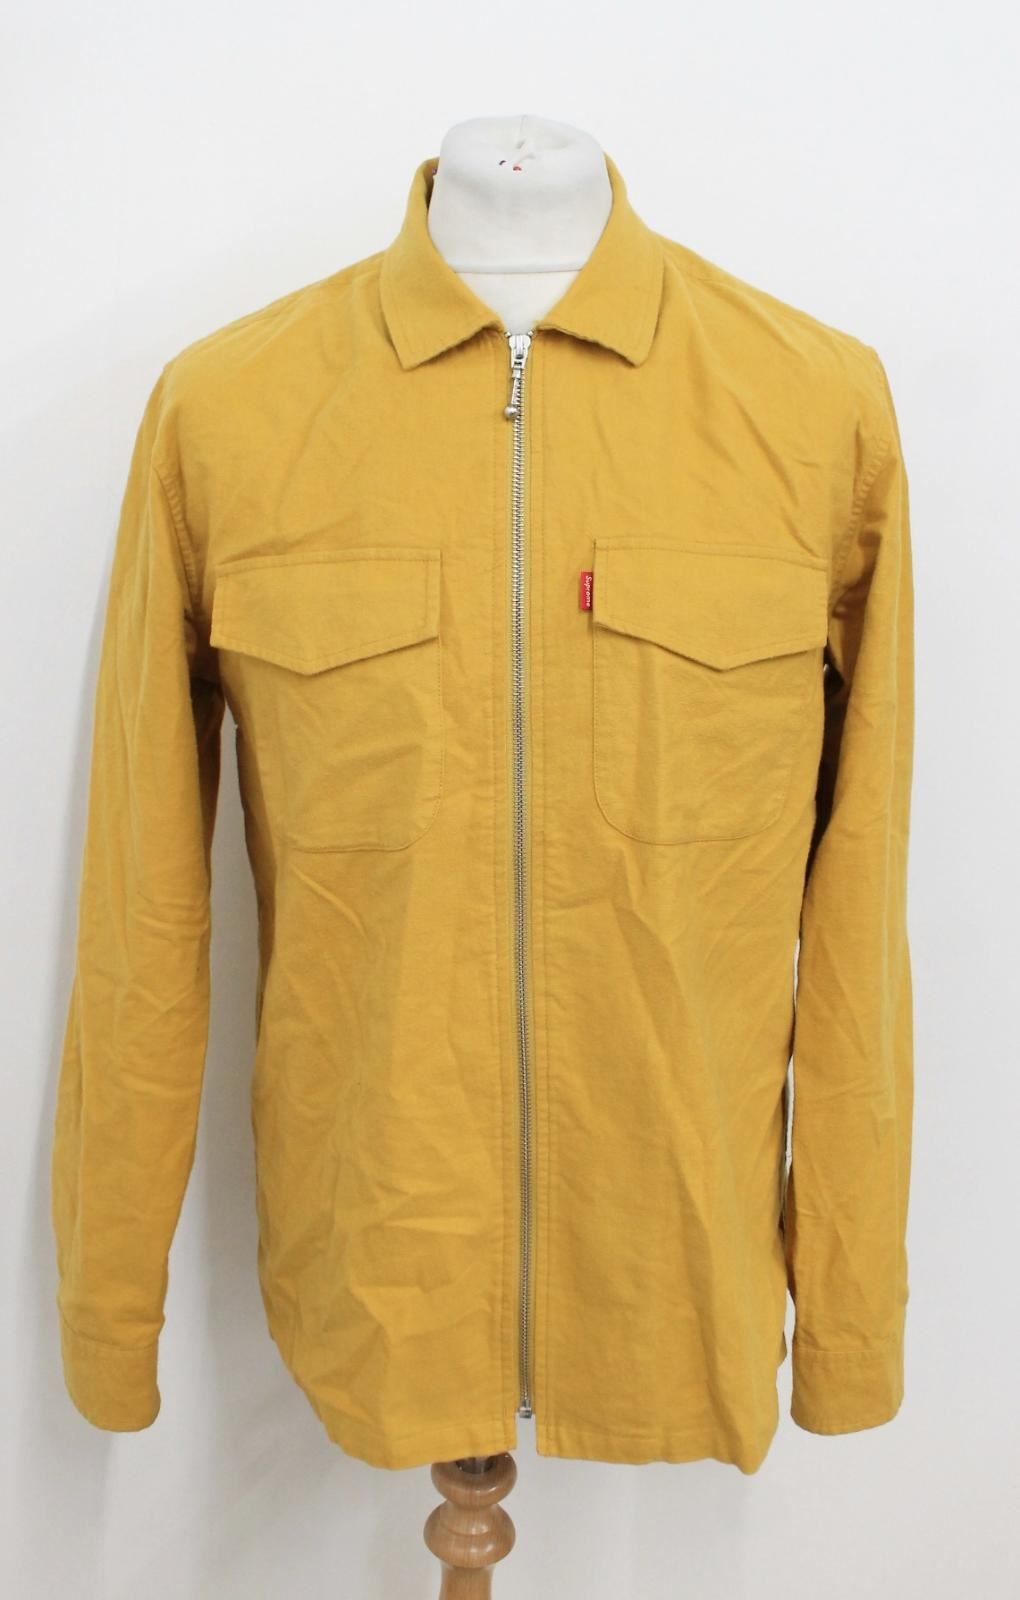 9a88ca3e SUPREME Men's Mustard Yellow Cotton Long Sleeved Collared Zip Up Shirt Size  M